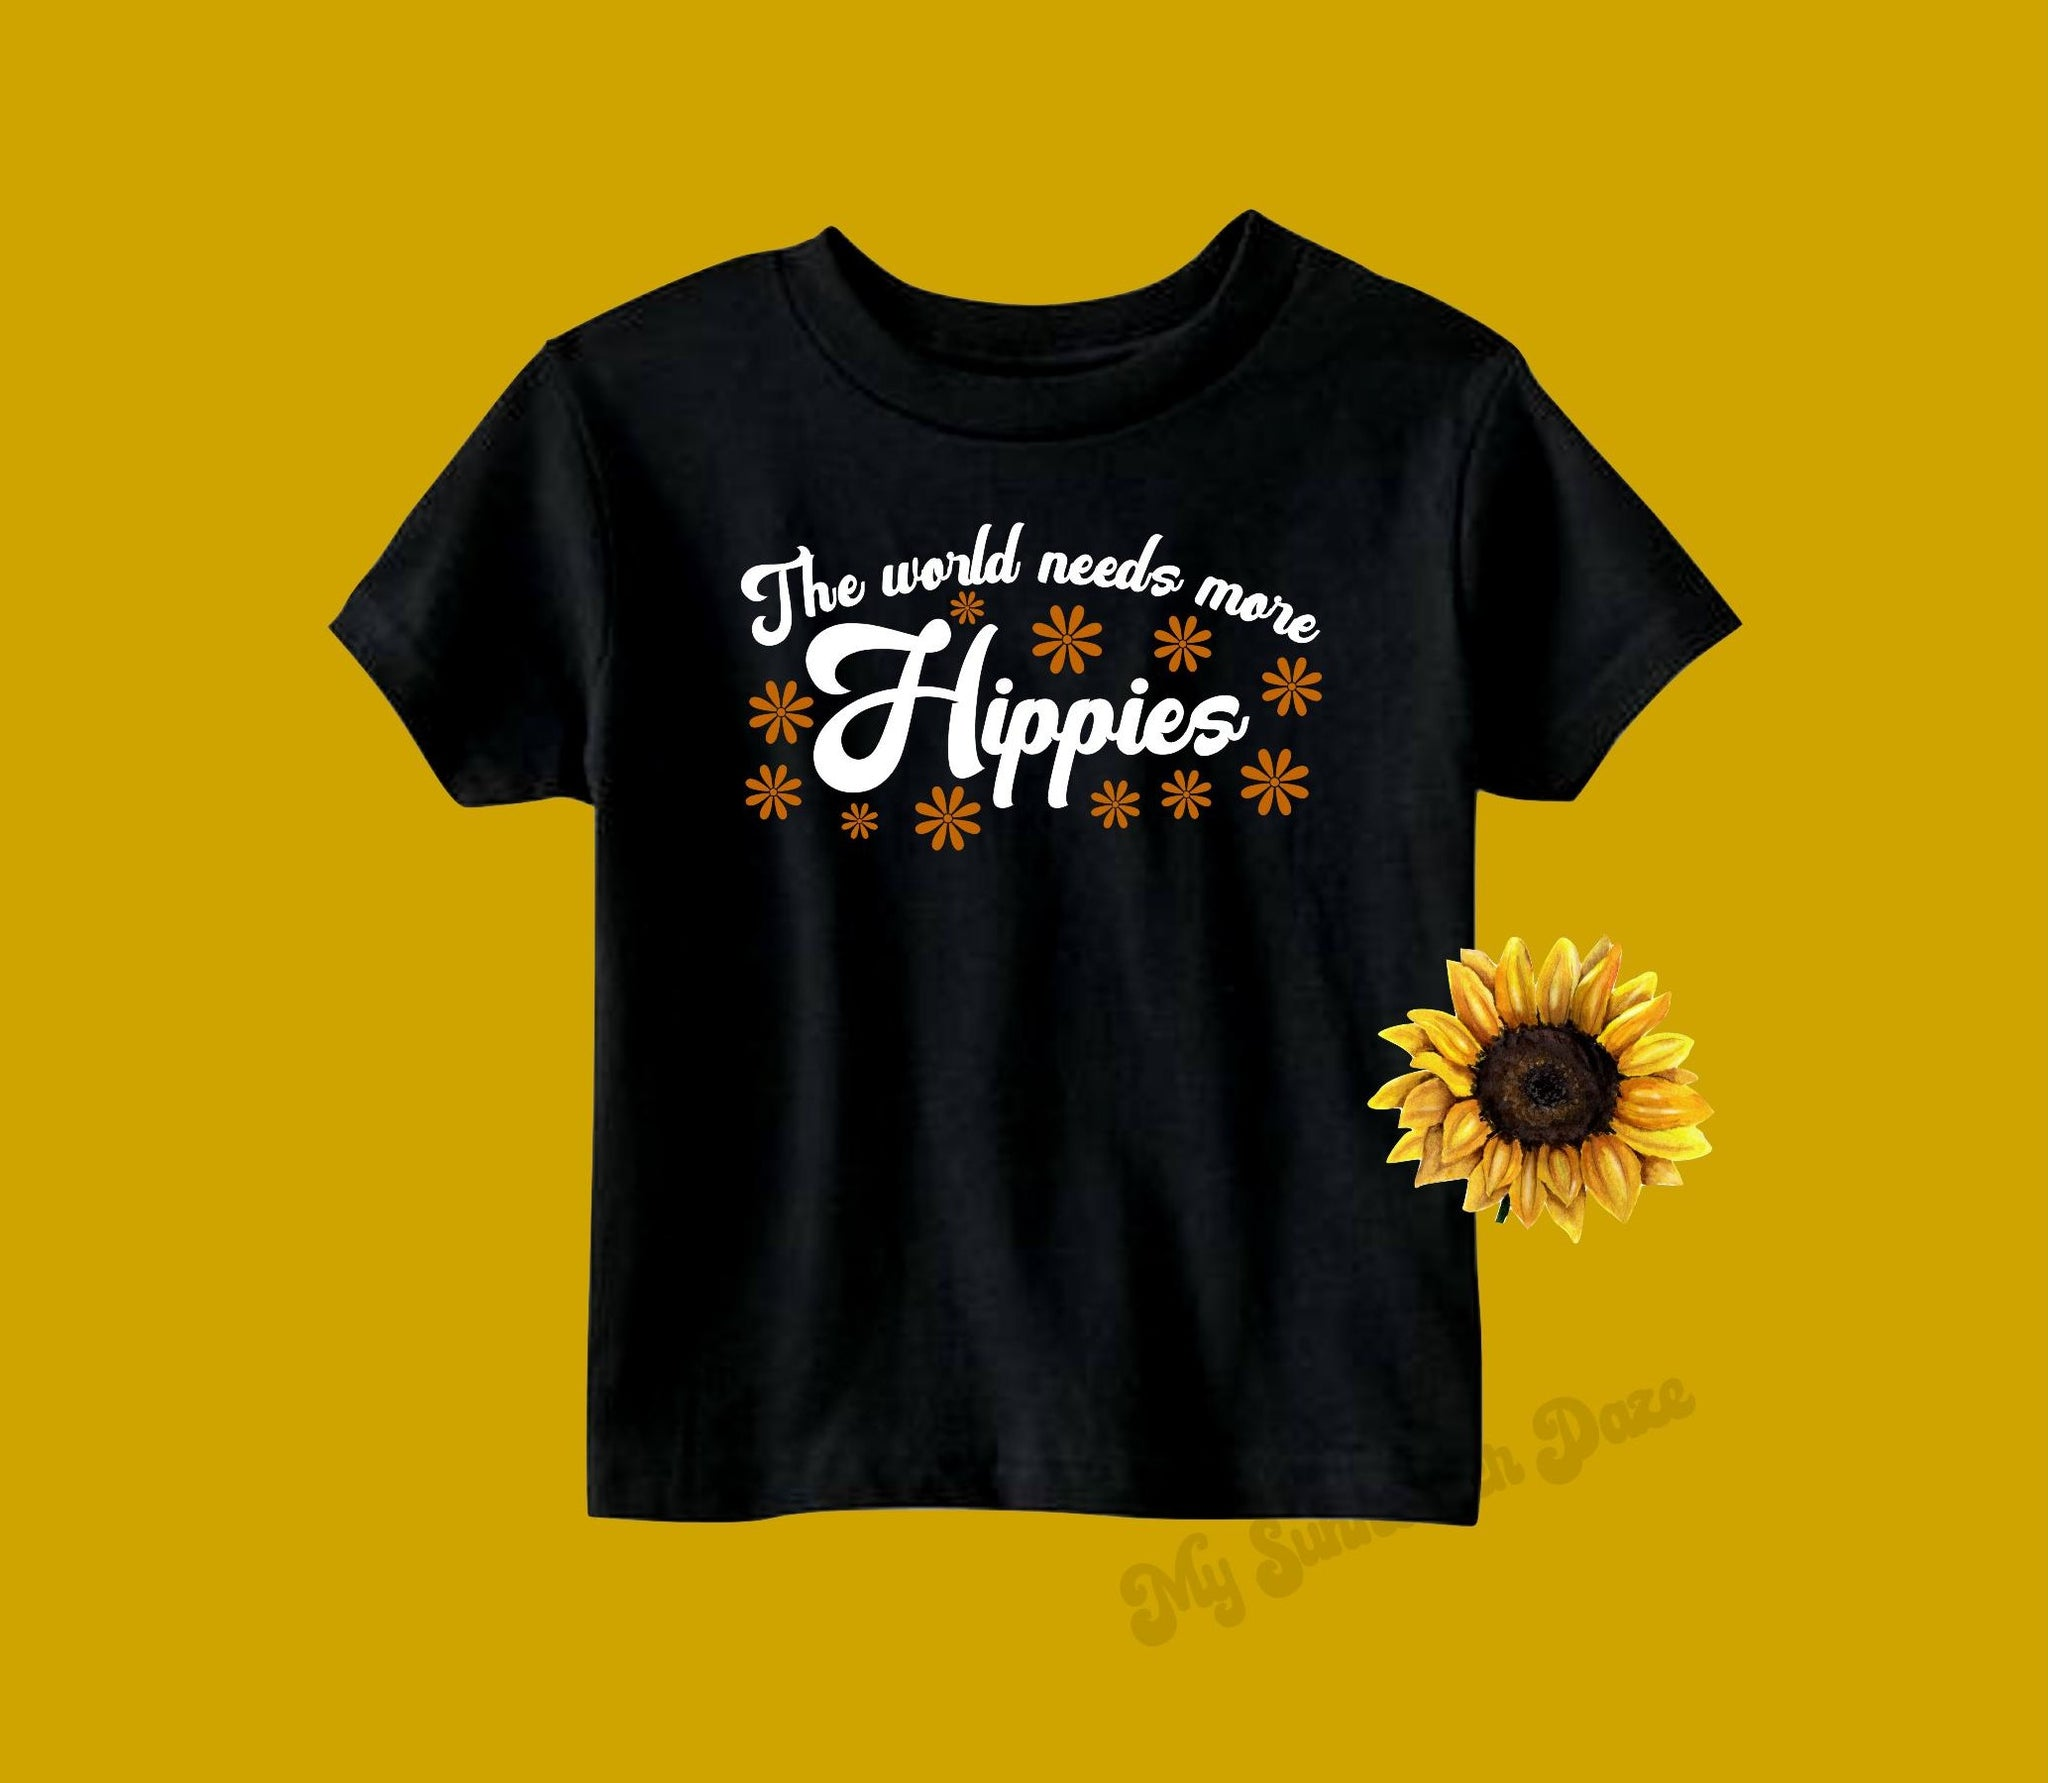 The world needs more Hippies - Toddler / Youth Tees - Two Colors